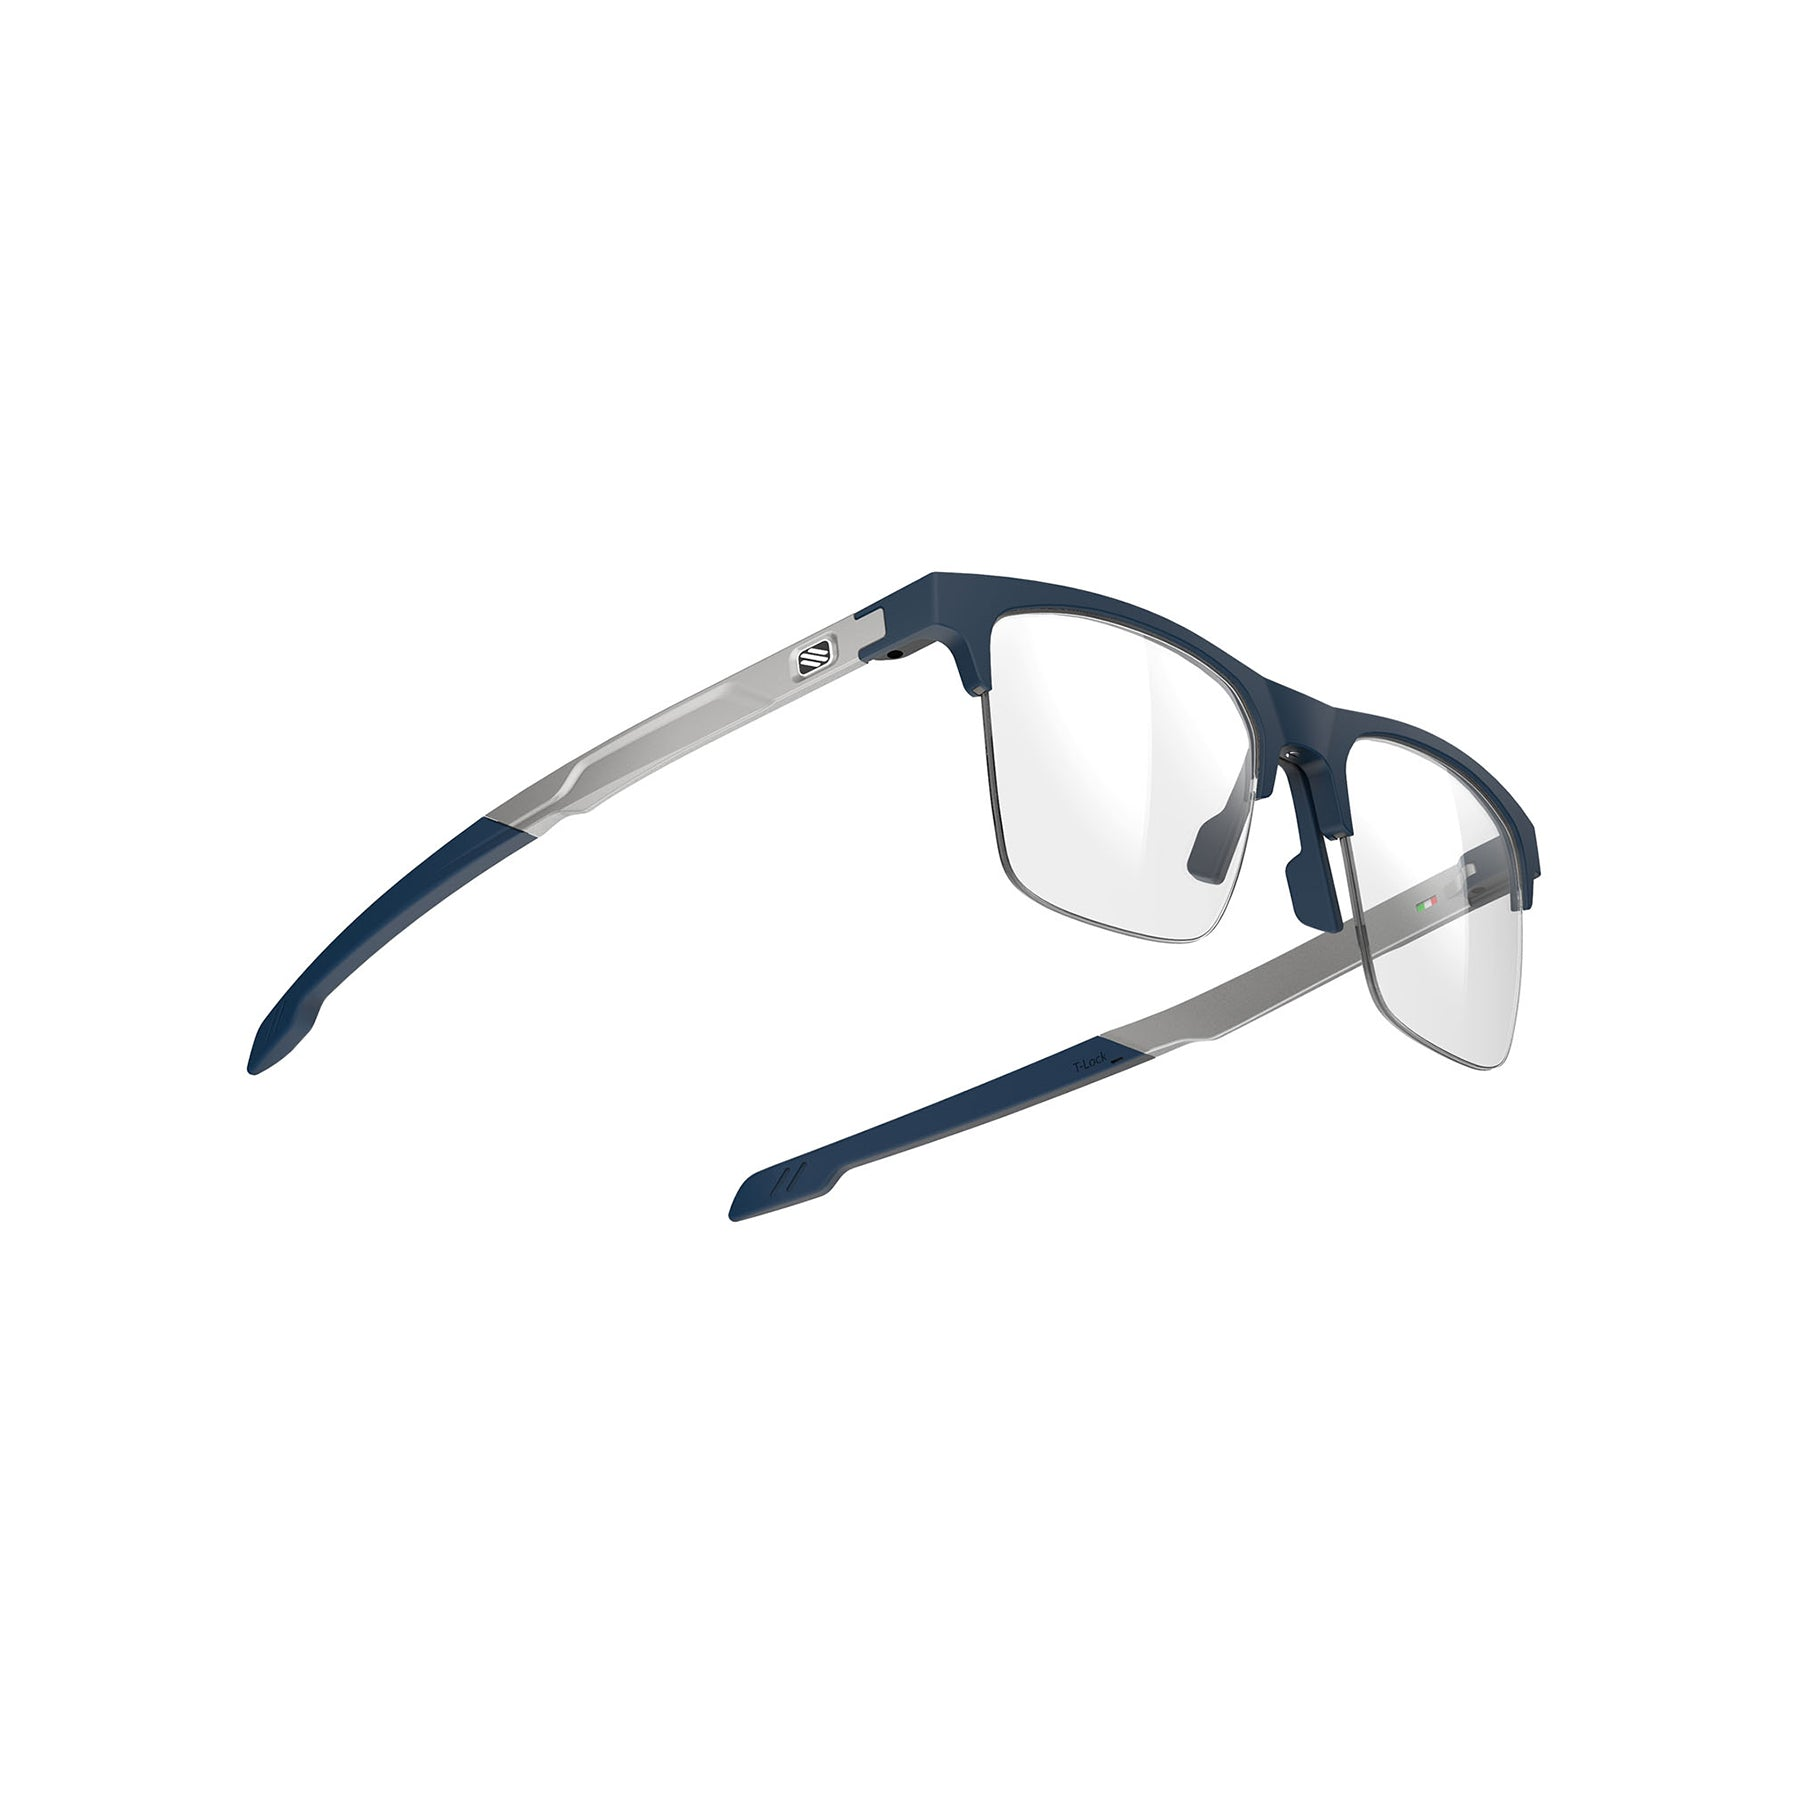 Rudy Project - Inkas XL - frame color: Blue Navy - lens color: Half Rim Shape A - photo angle: Bottom Front Angle Variant Hover Image